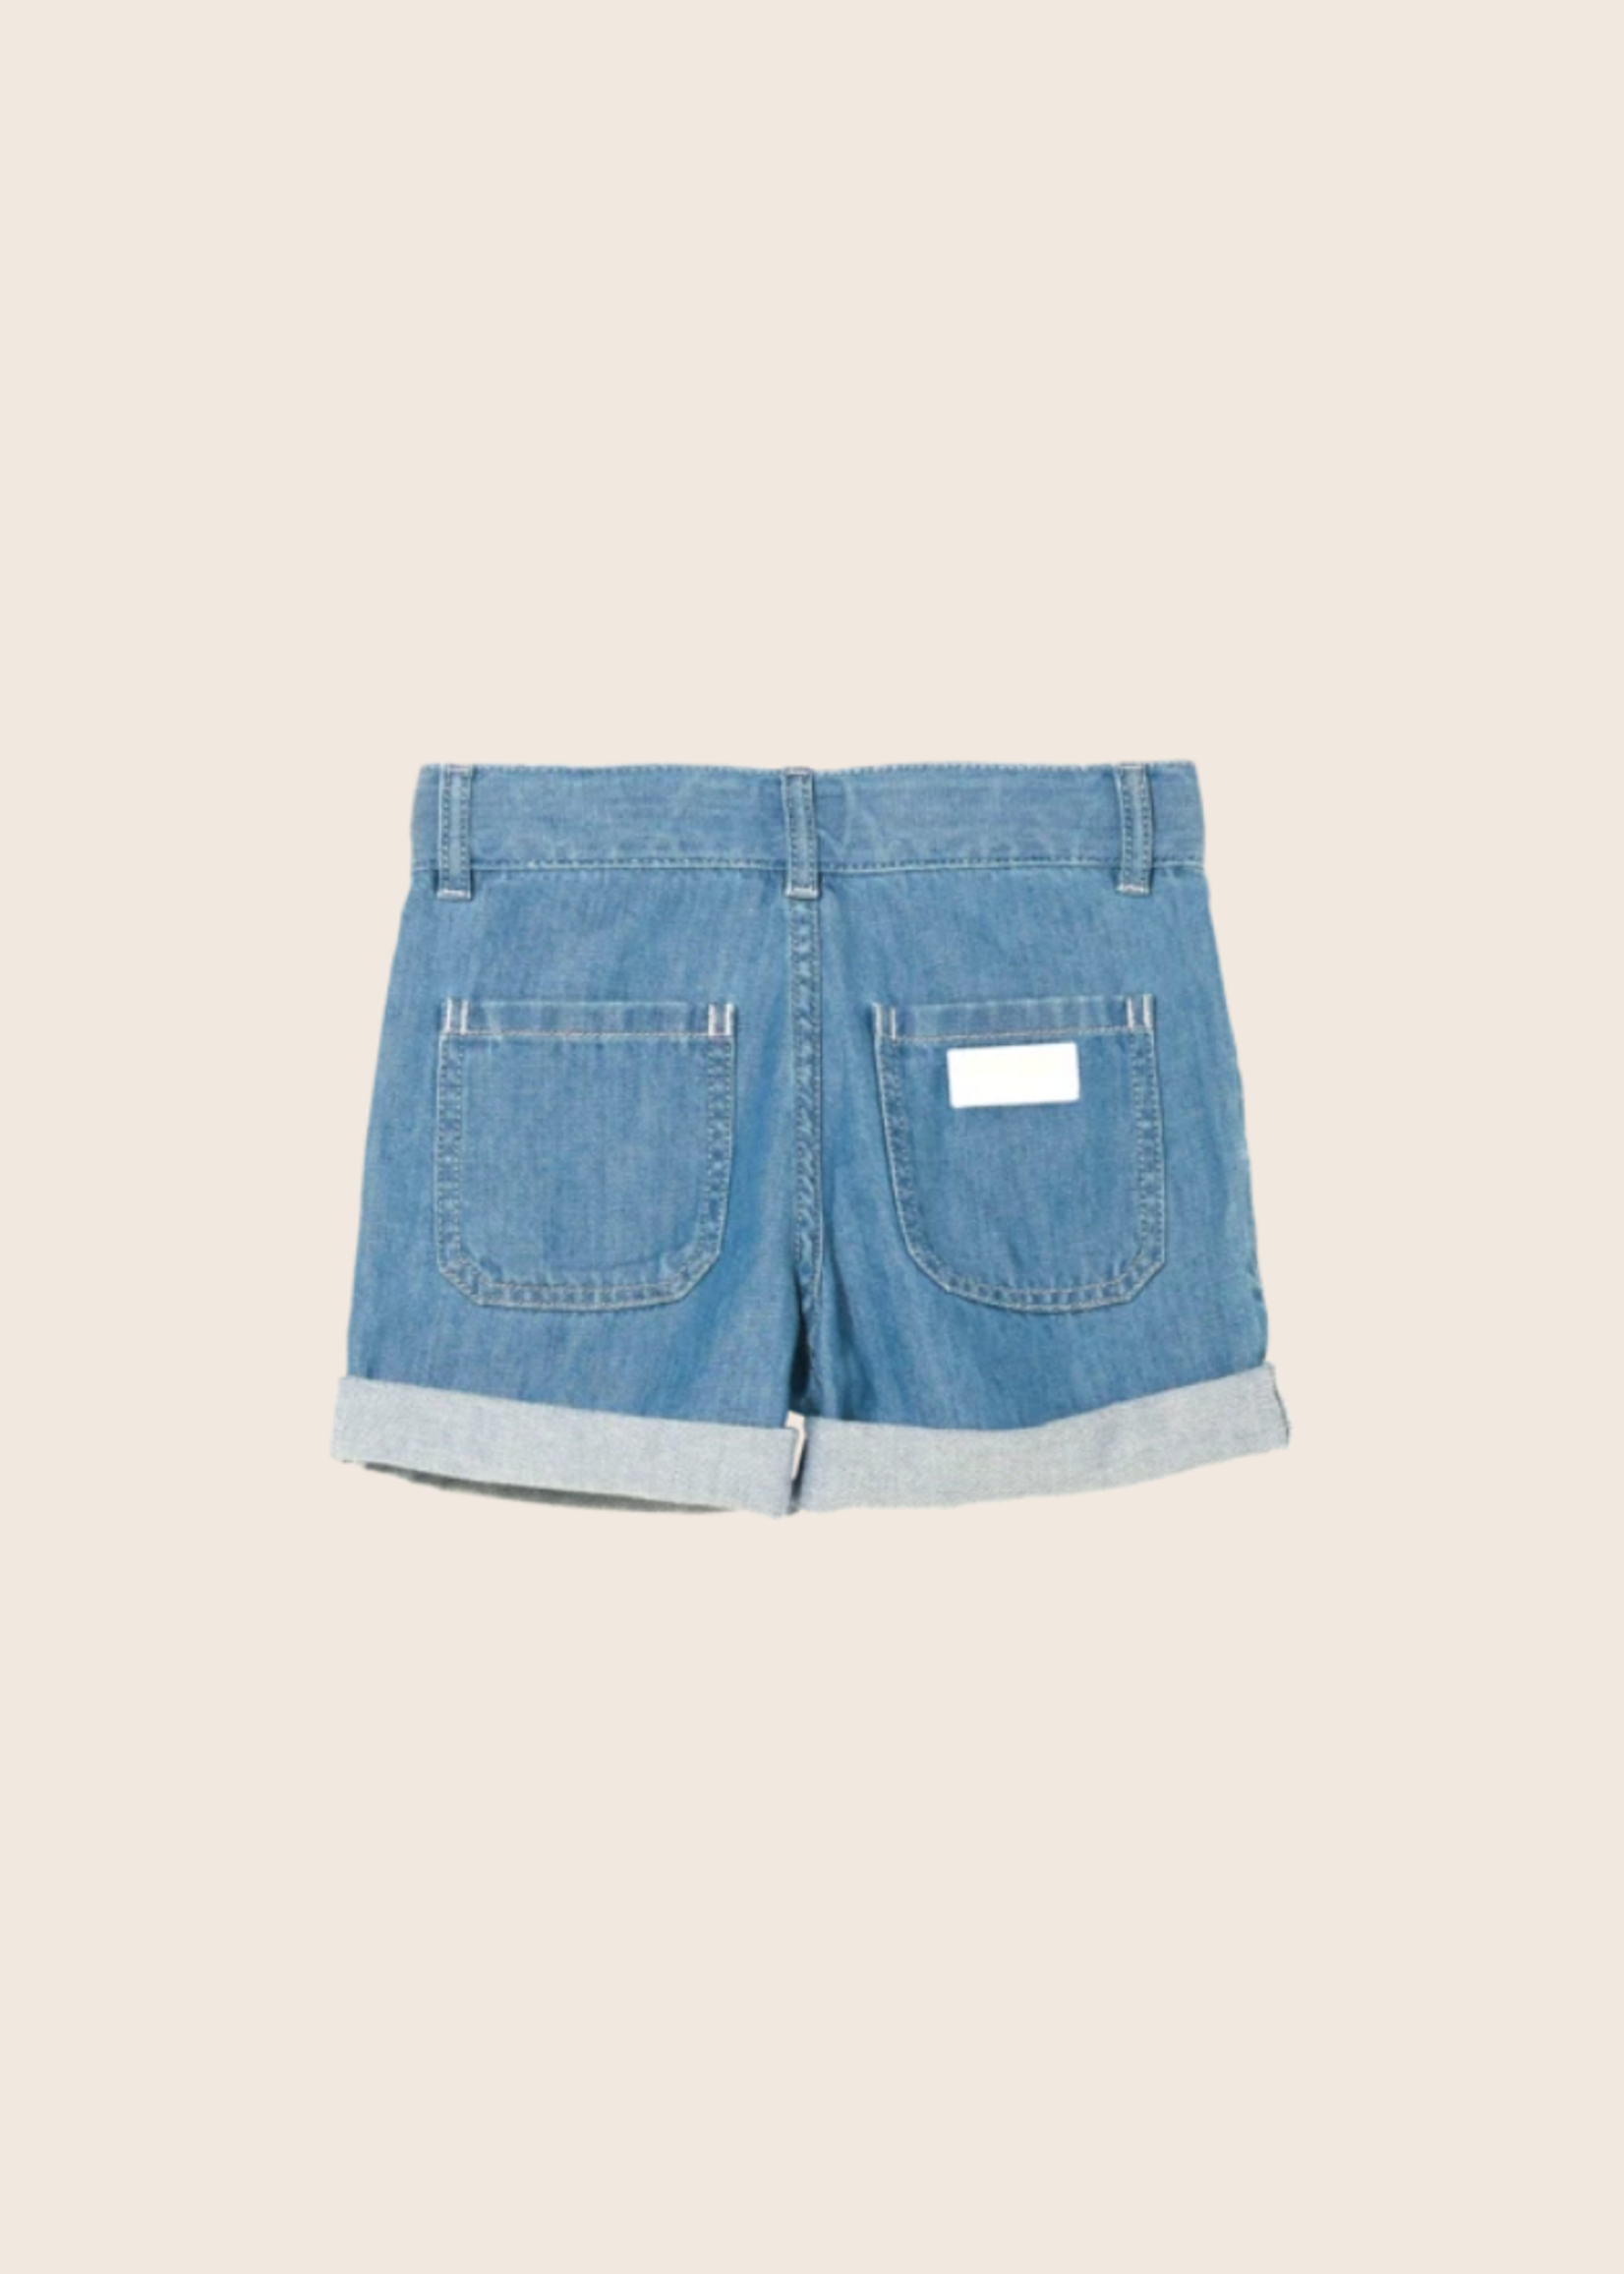 FINGER IN THE NOSE MARLIE Bleached Blue - Loose Fit Shorts